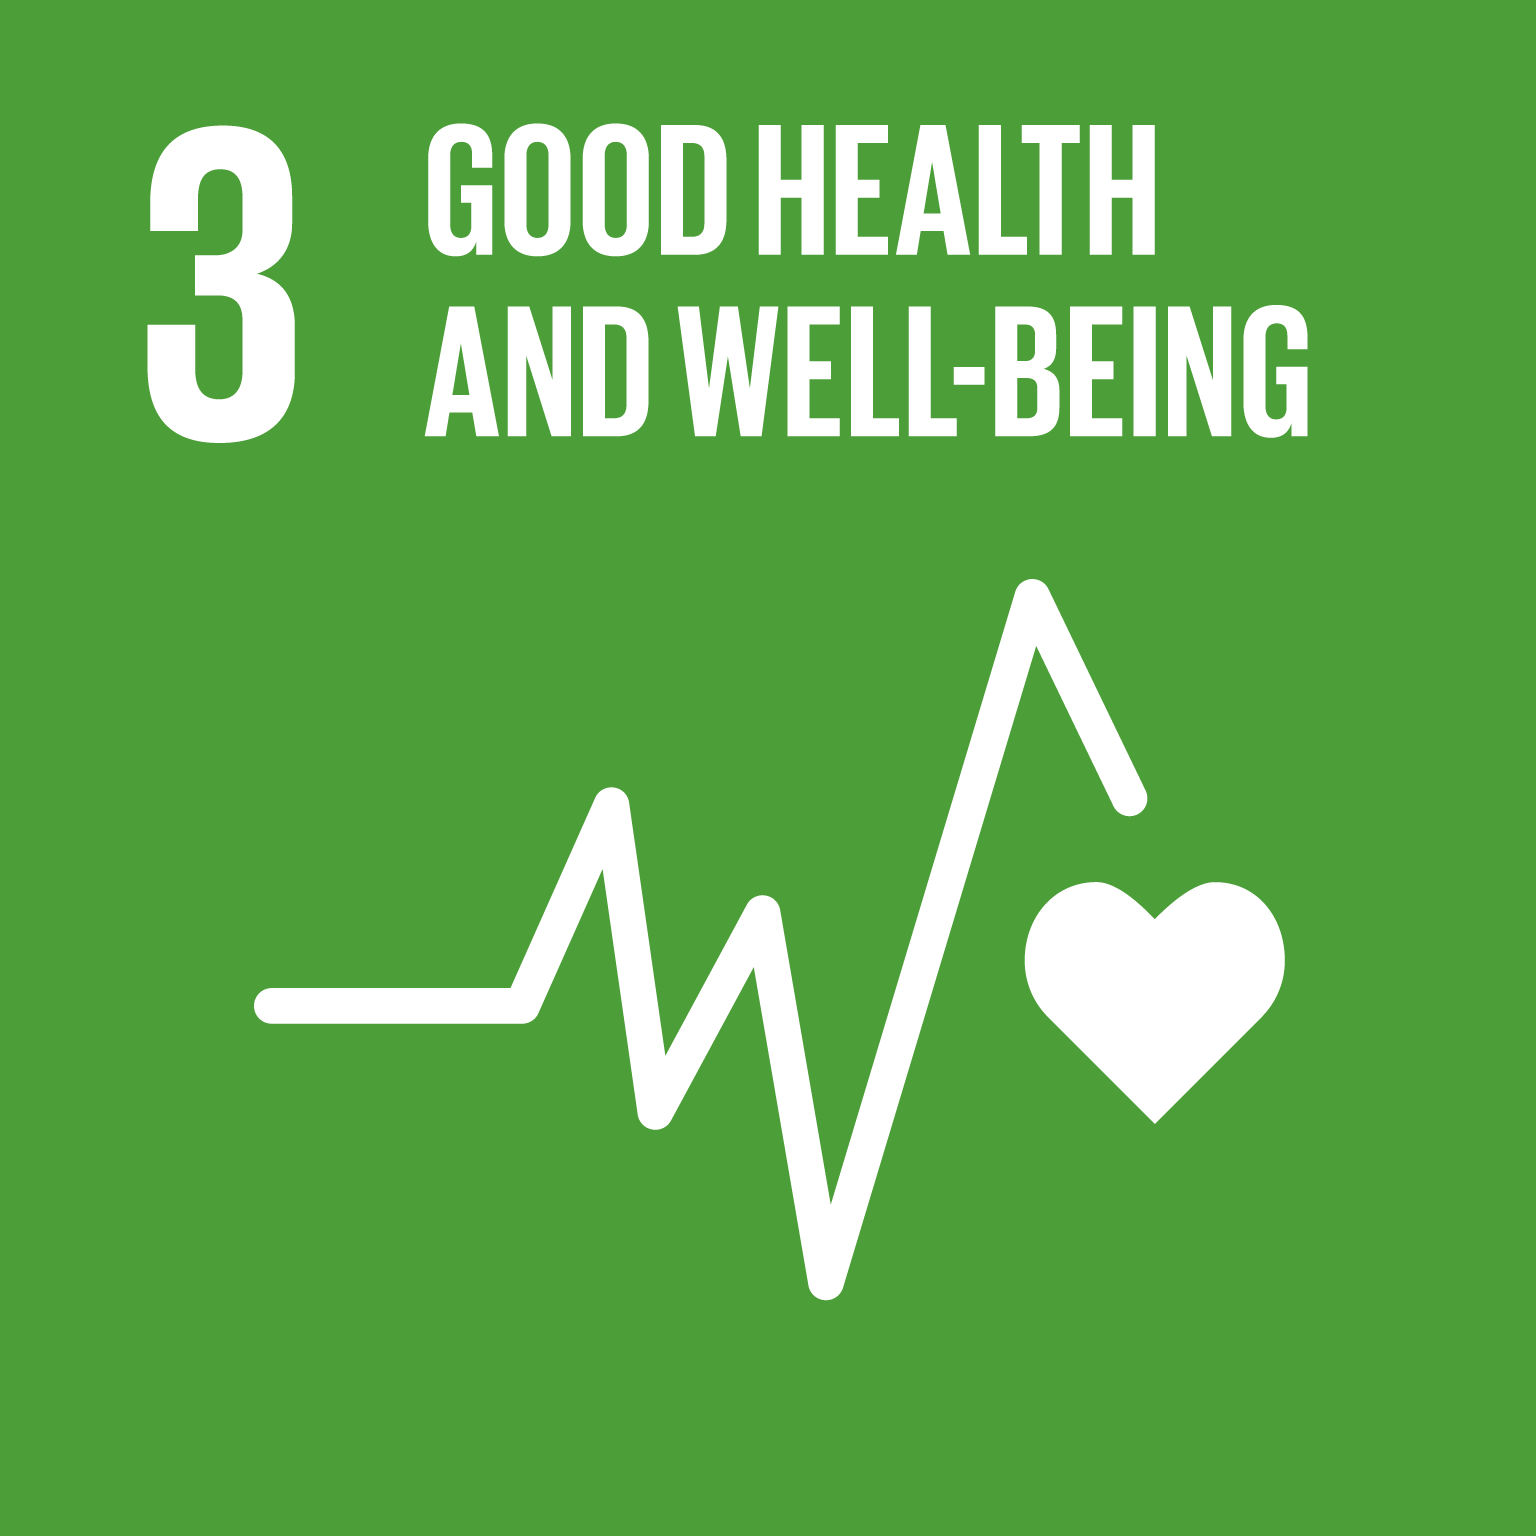 【SDGs logo】GOOD HEALTH AND WELL-BEING